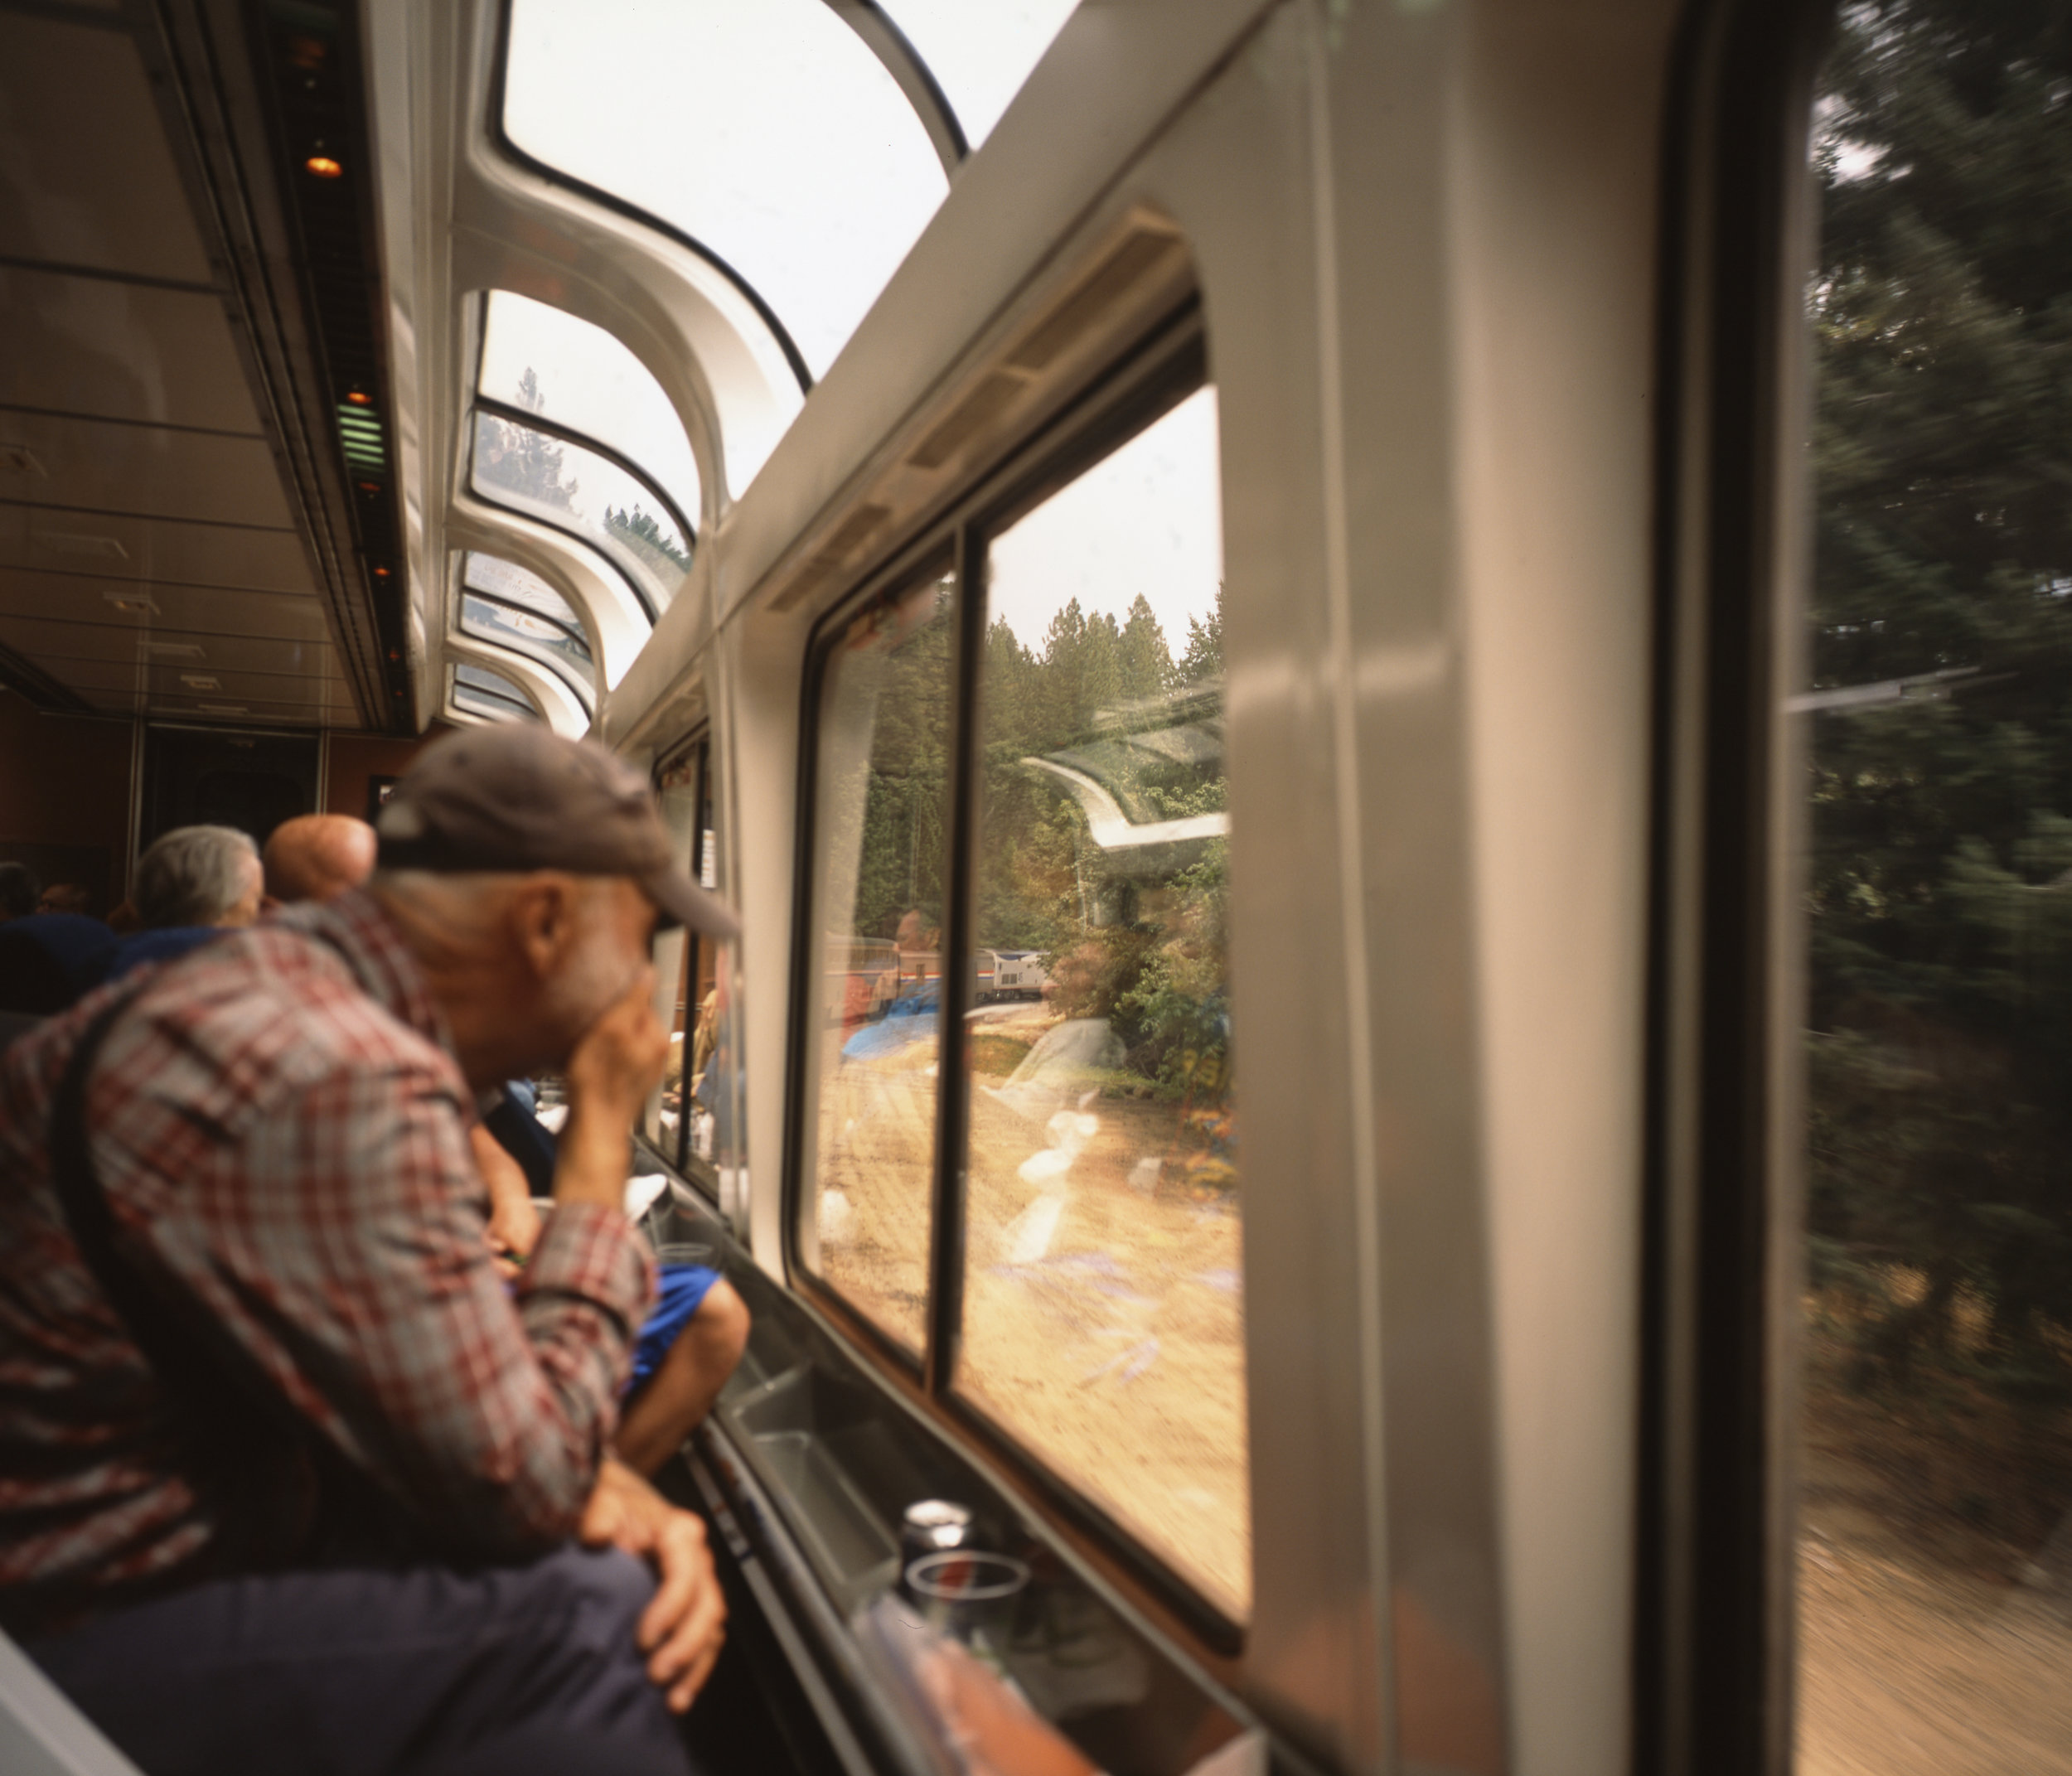 The Dome car provides panoramic scenic views